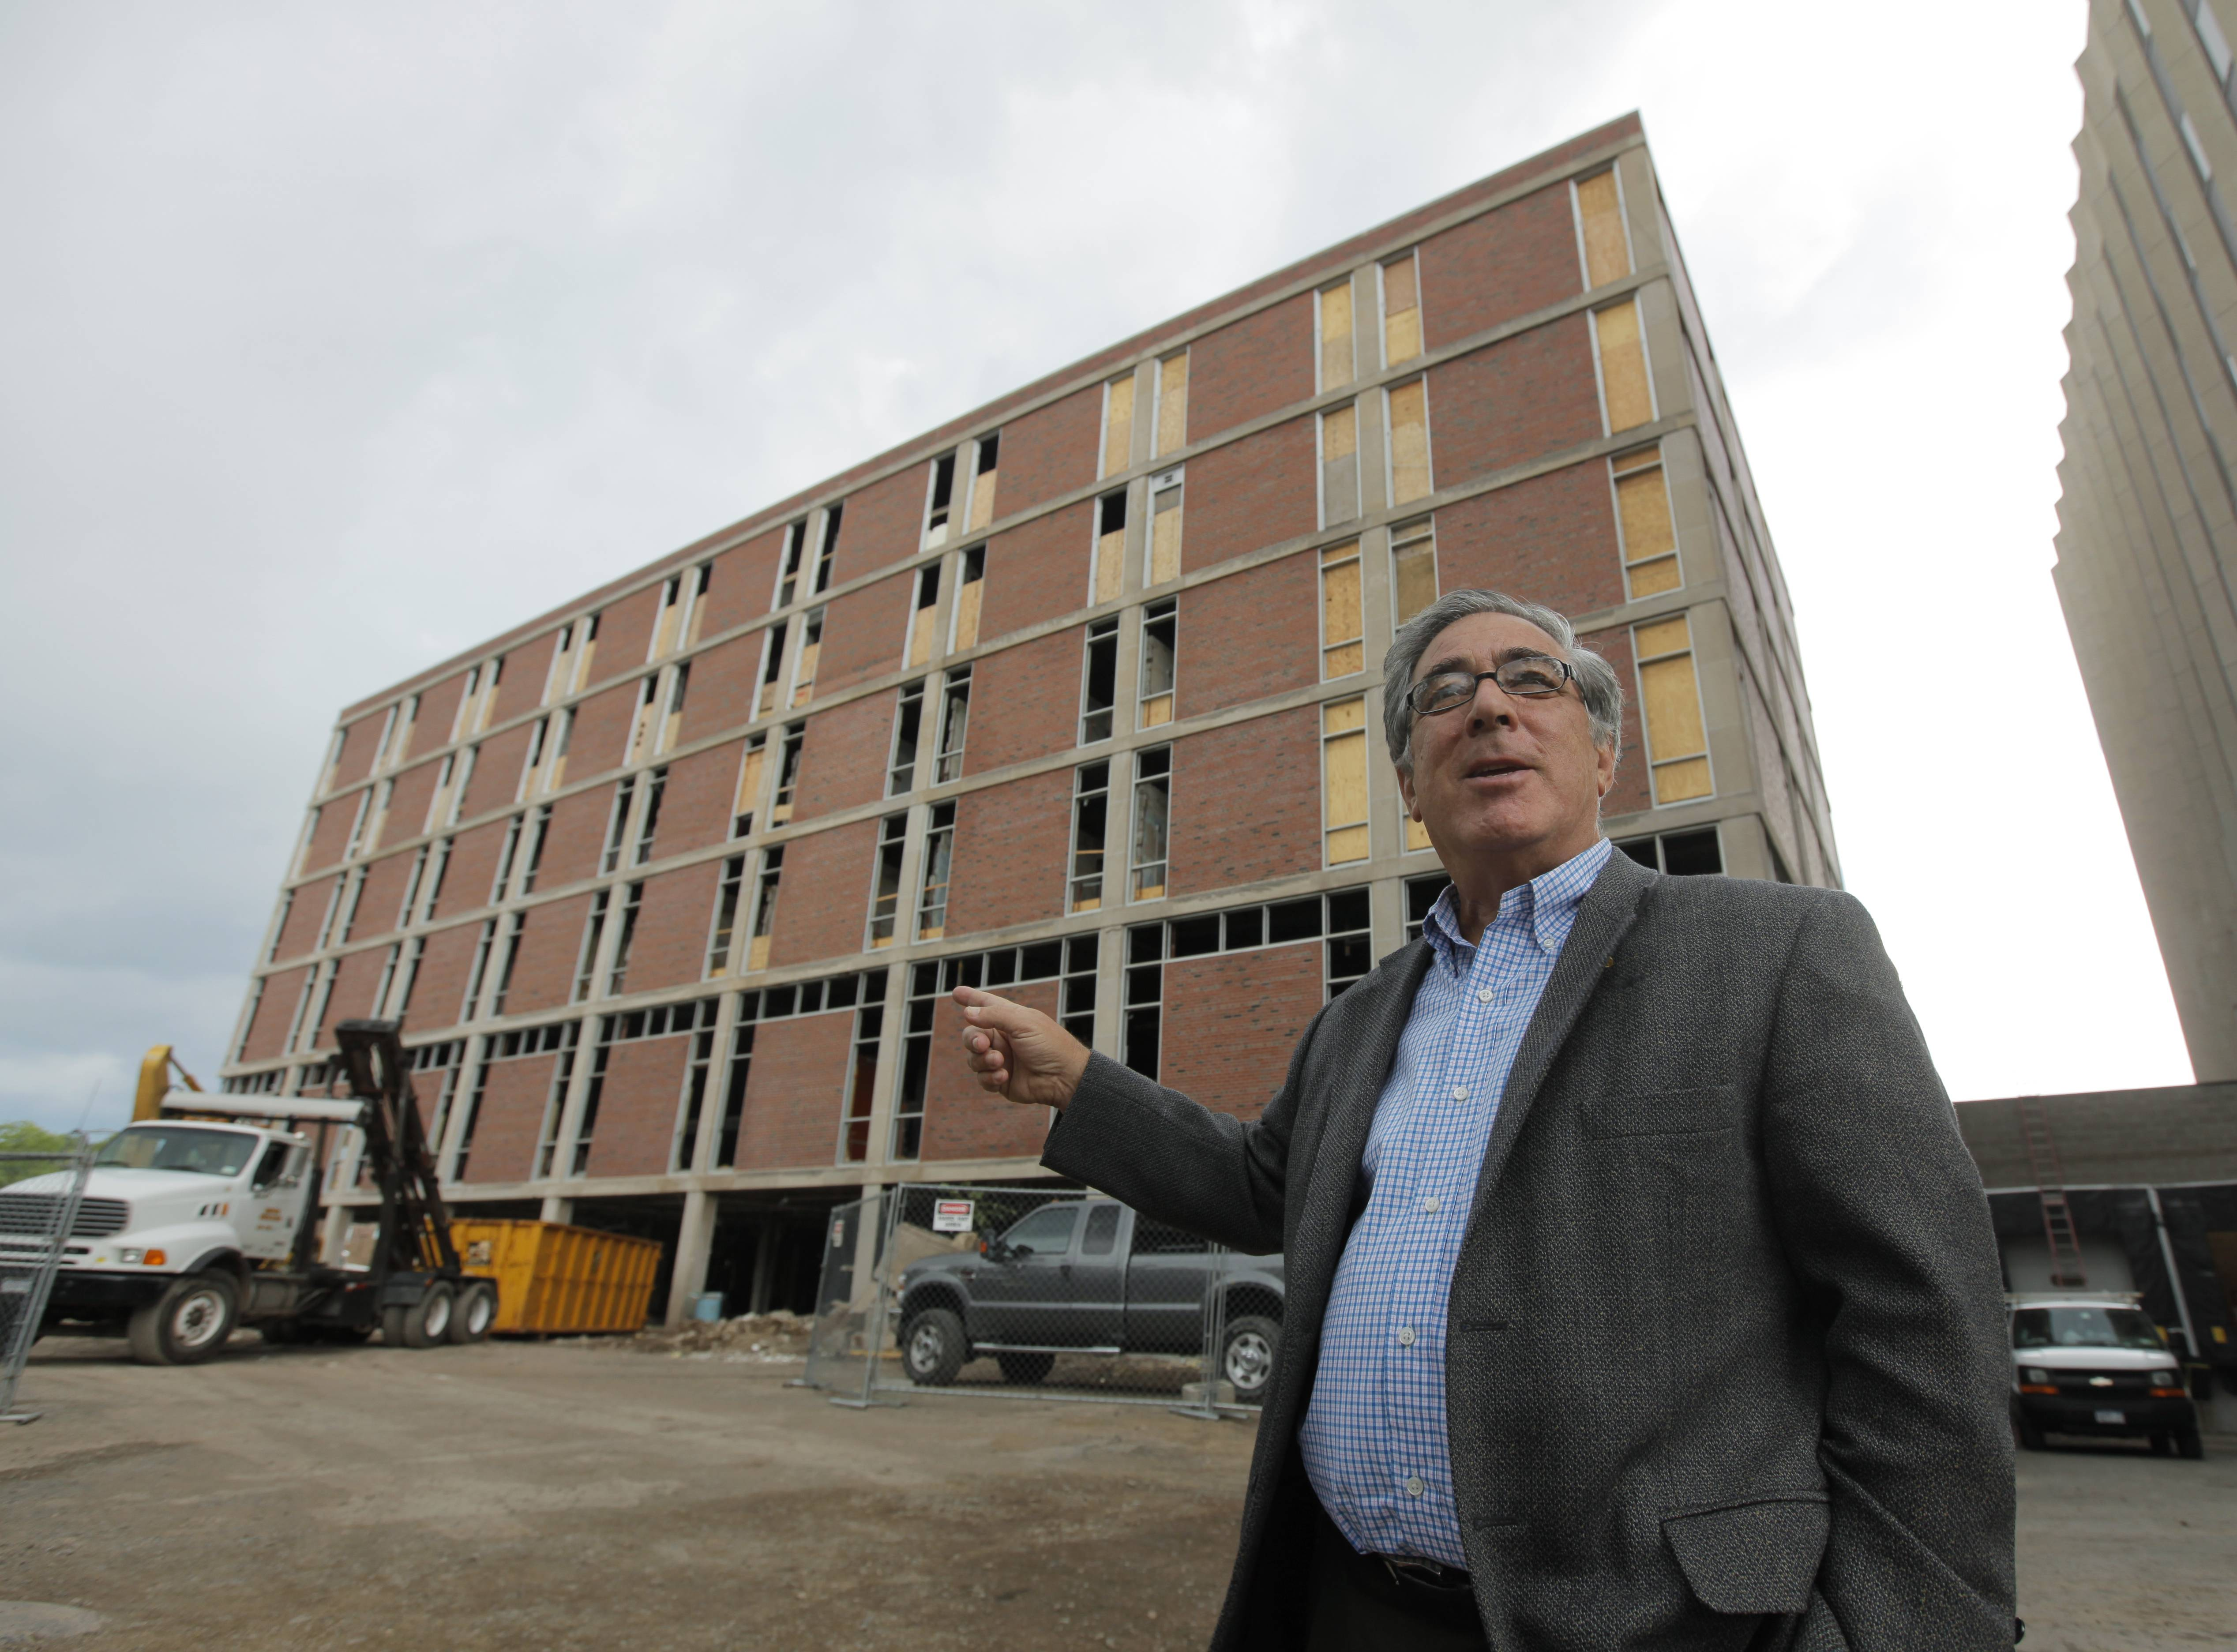 Larry Glazer gestures toward a building to be demolished on Alexander Street in Rochester, N.Y. Glazer and wife, Jane, were aboard their small plane, which took off from the Greater Rochester International Airport, as it flew 1,700 miles down the East Coast on Friday before finally crashing off the coast of Jamaica.